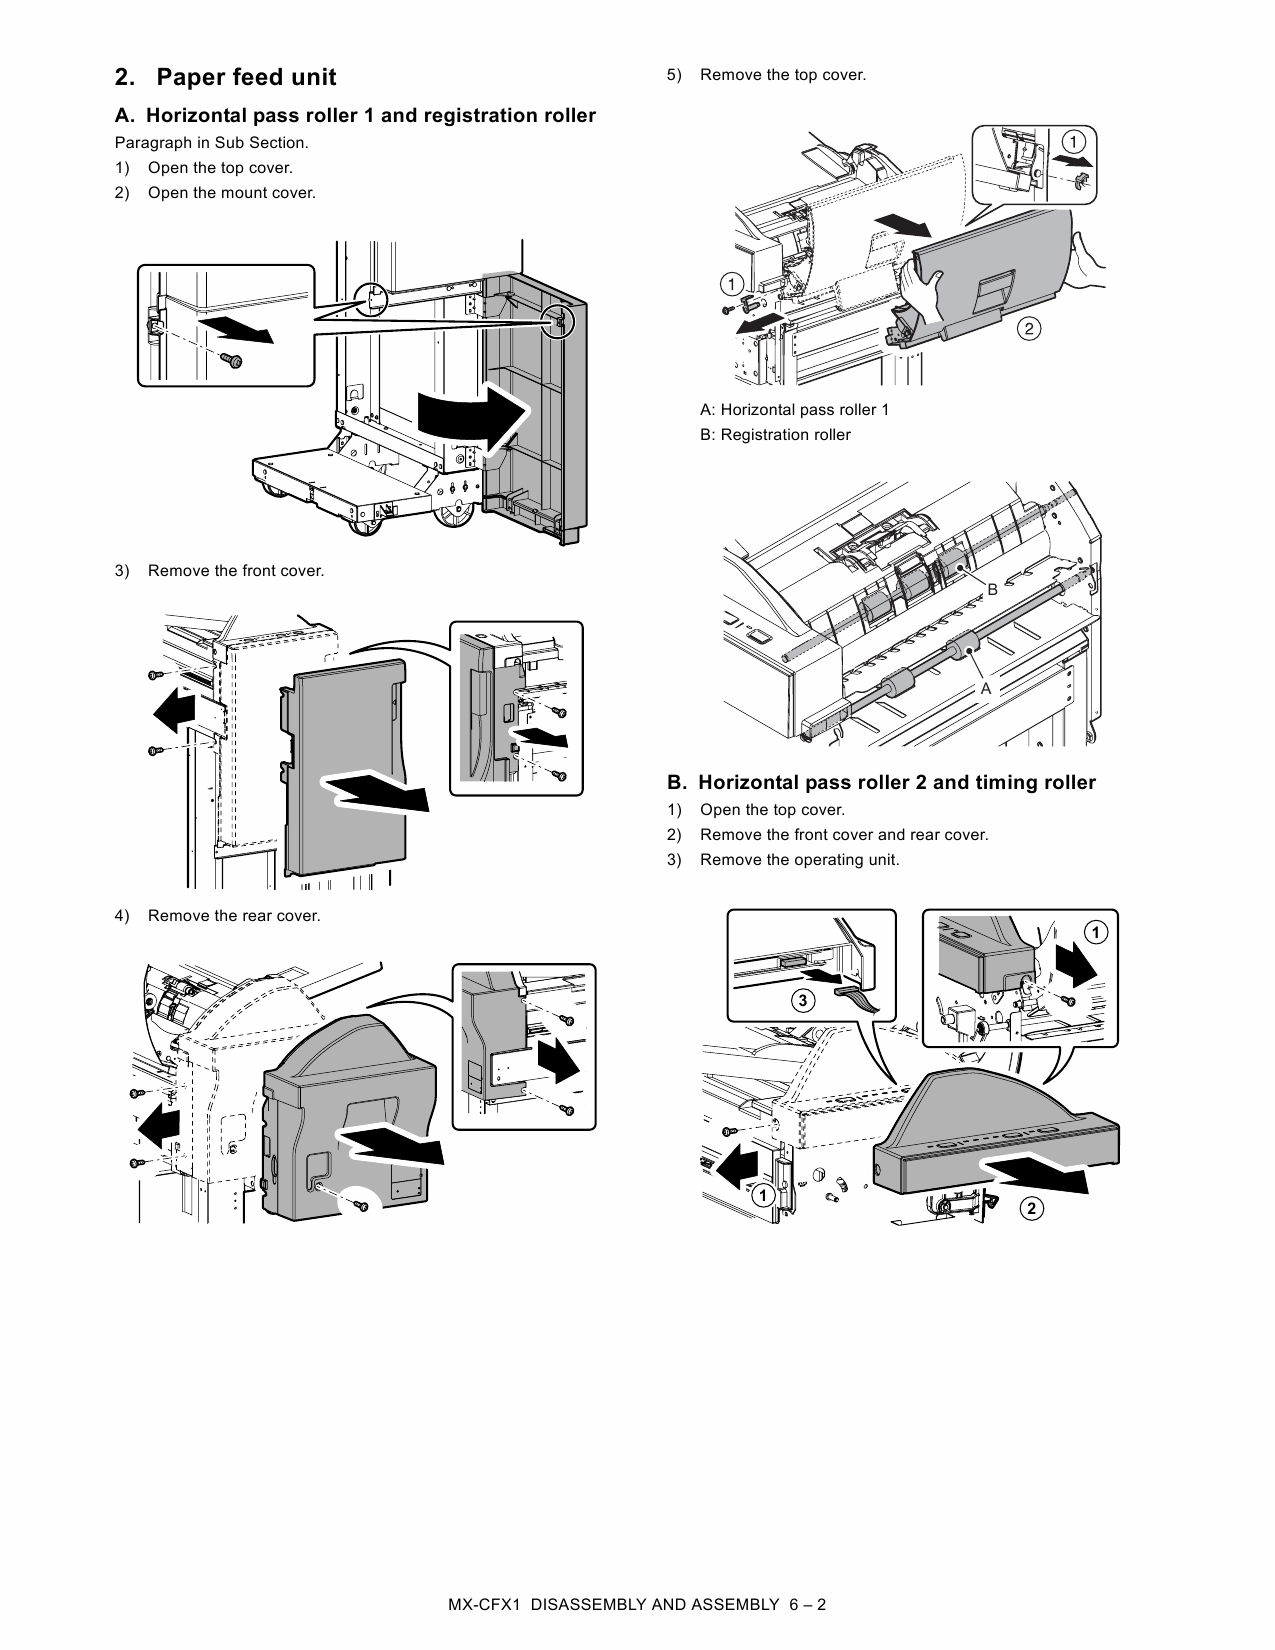 SHARP MX CFX1 Service Manual